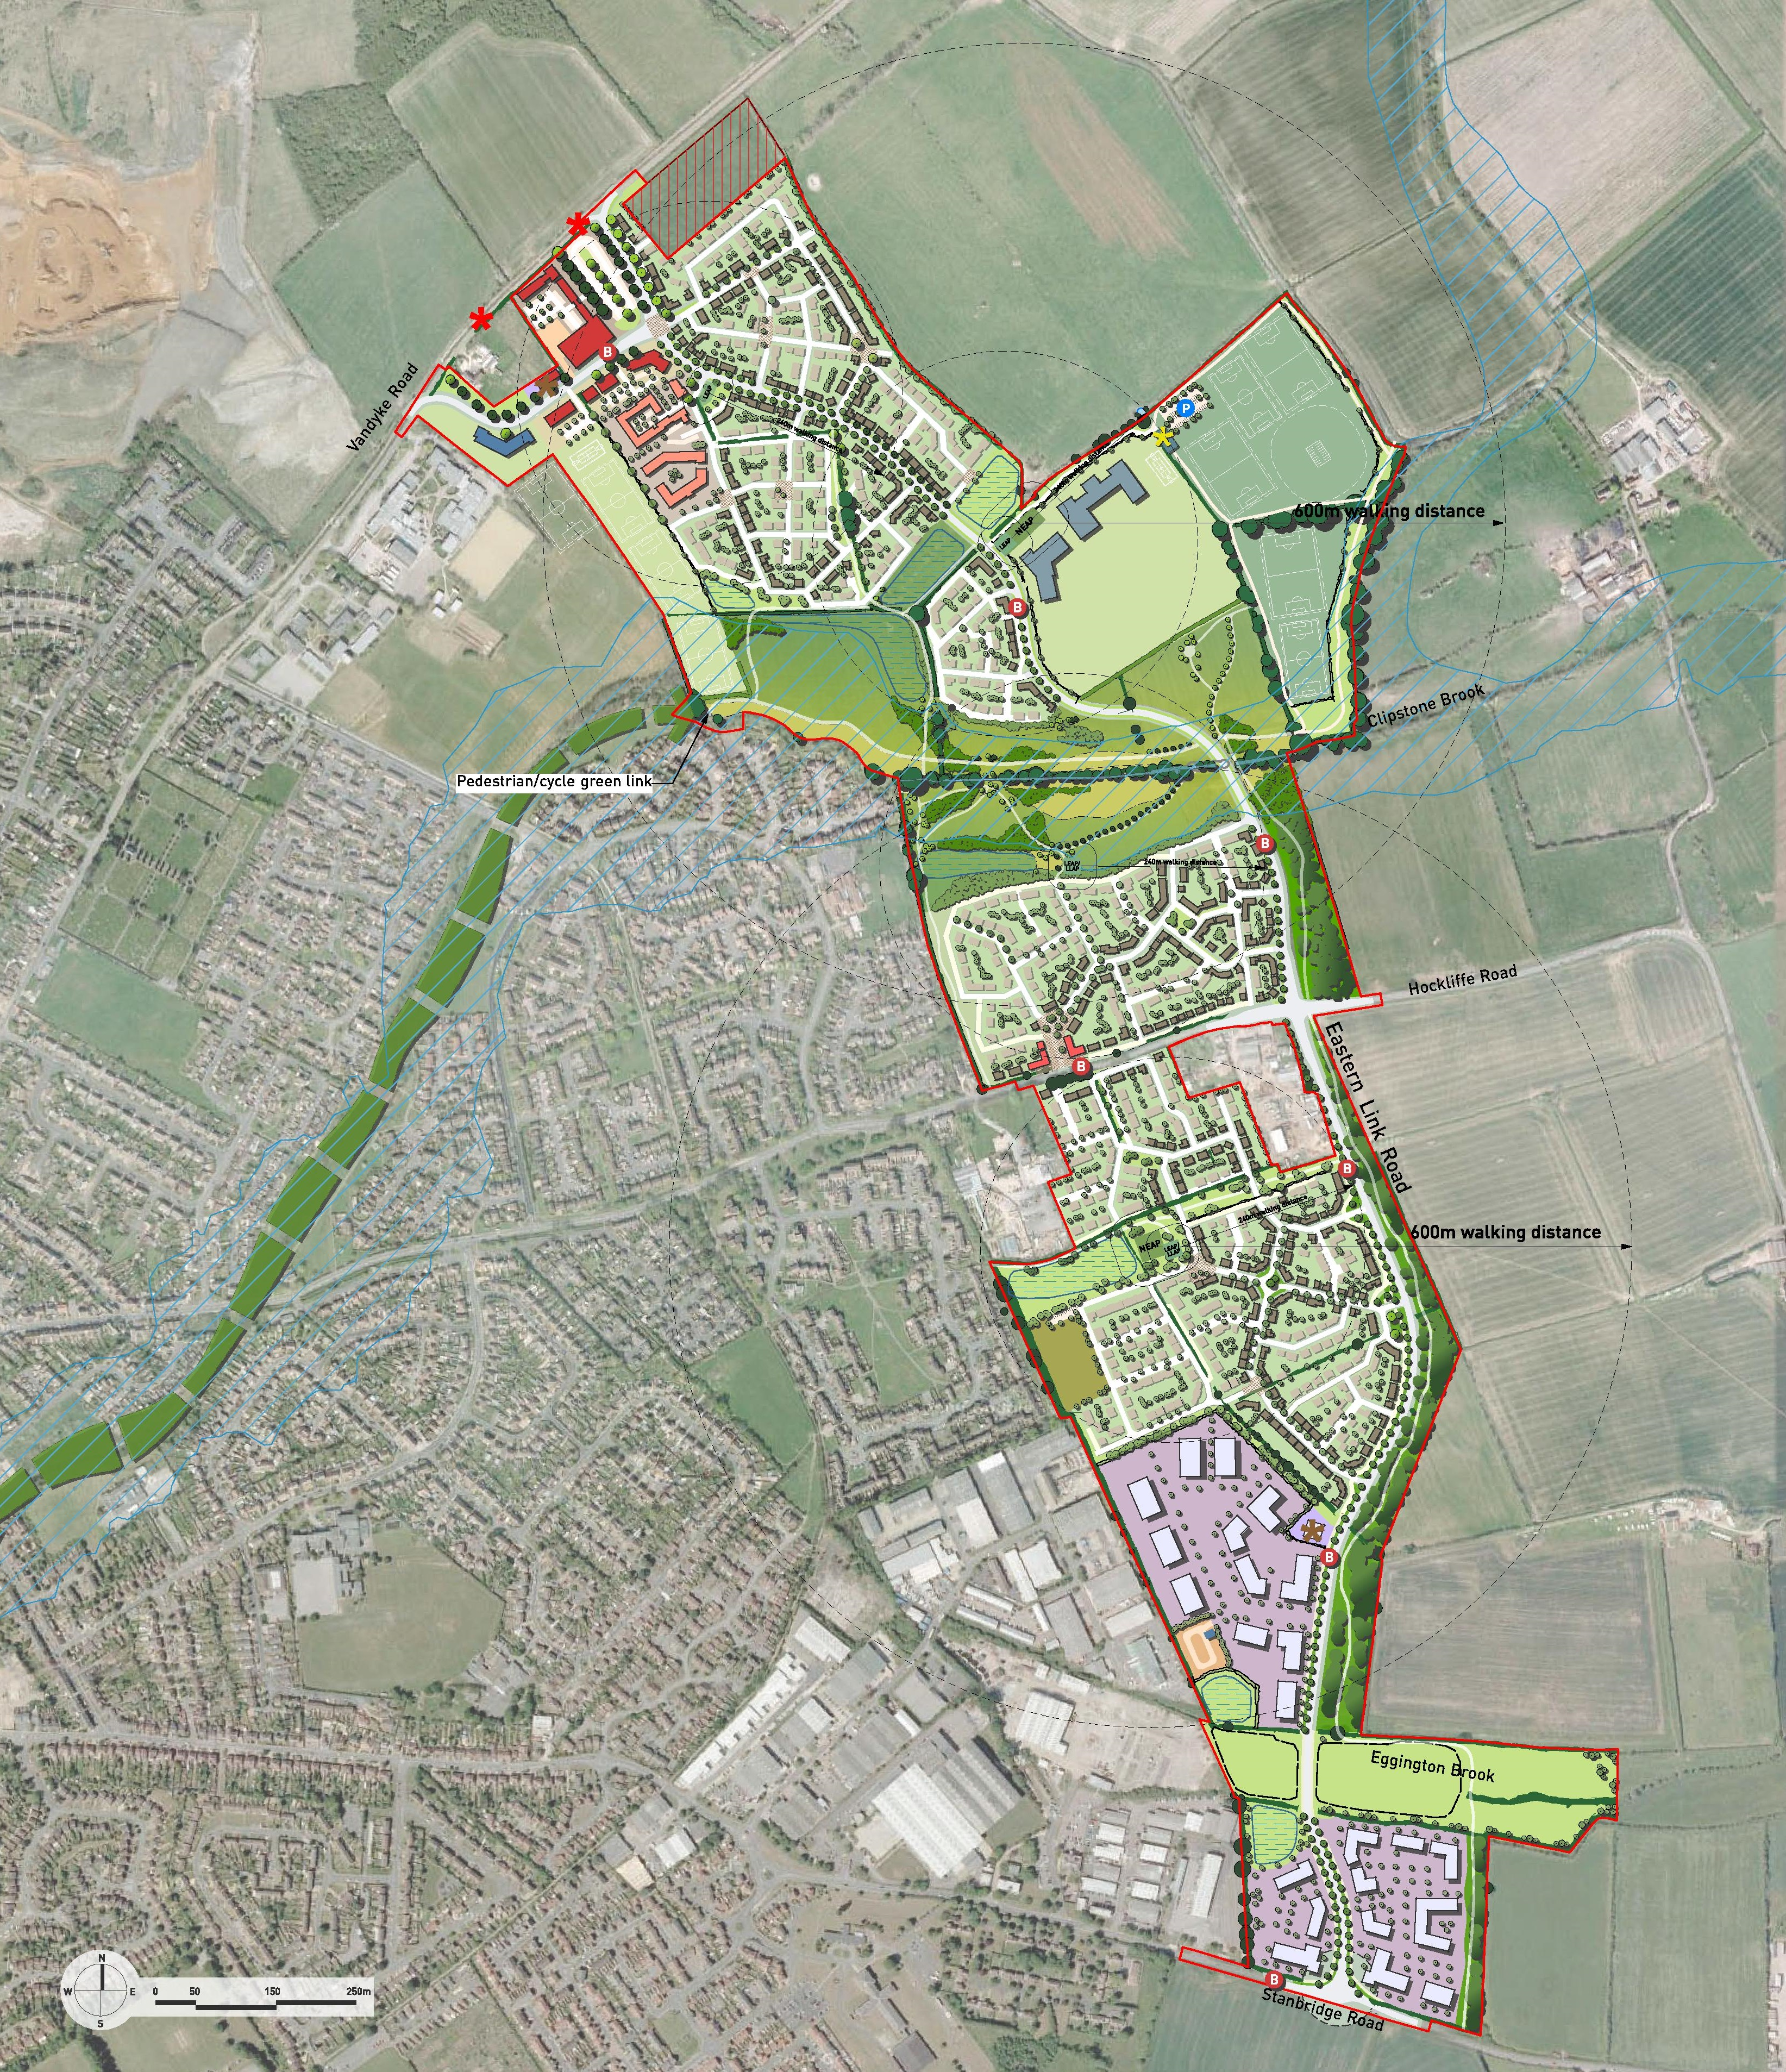 Clipstone w 0225_40-1i_built_form_master_plan-cropped